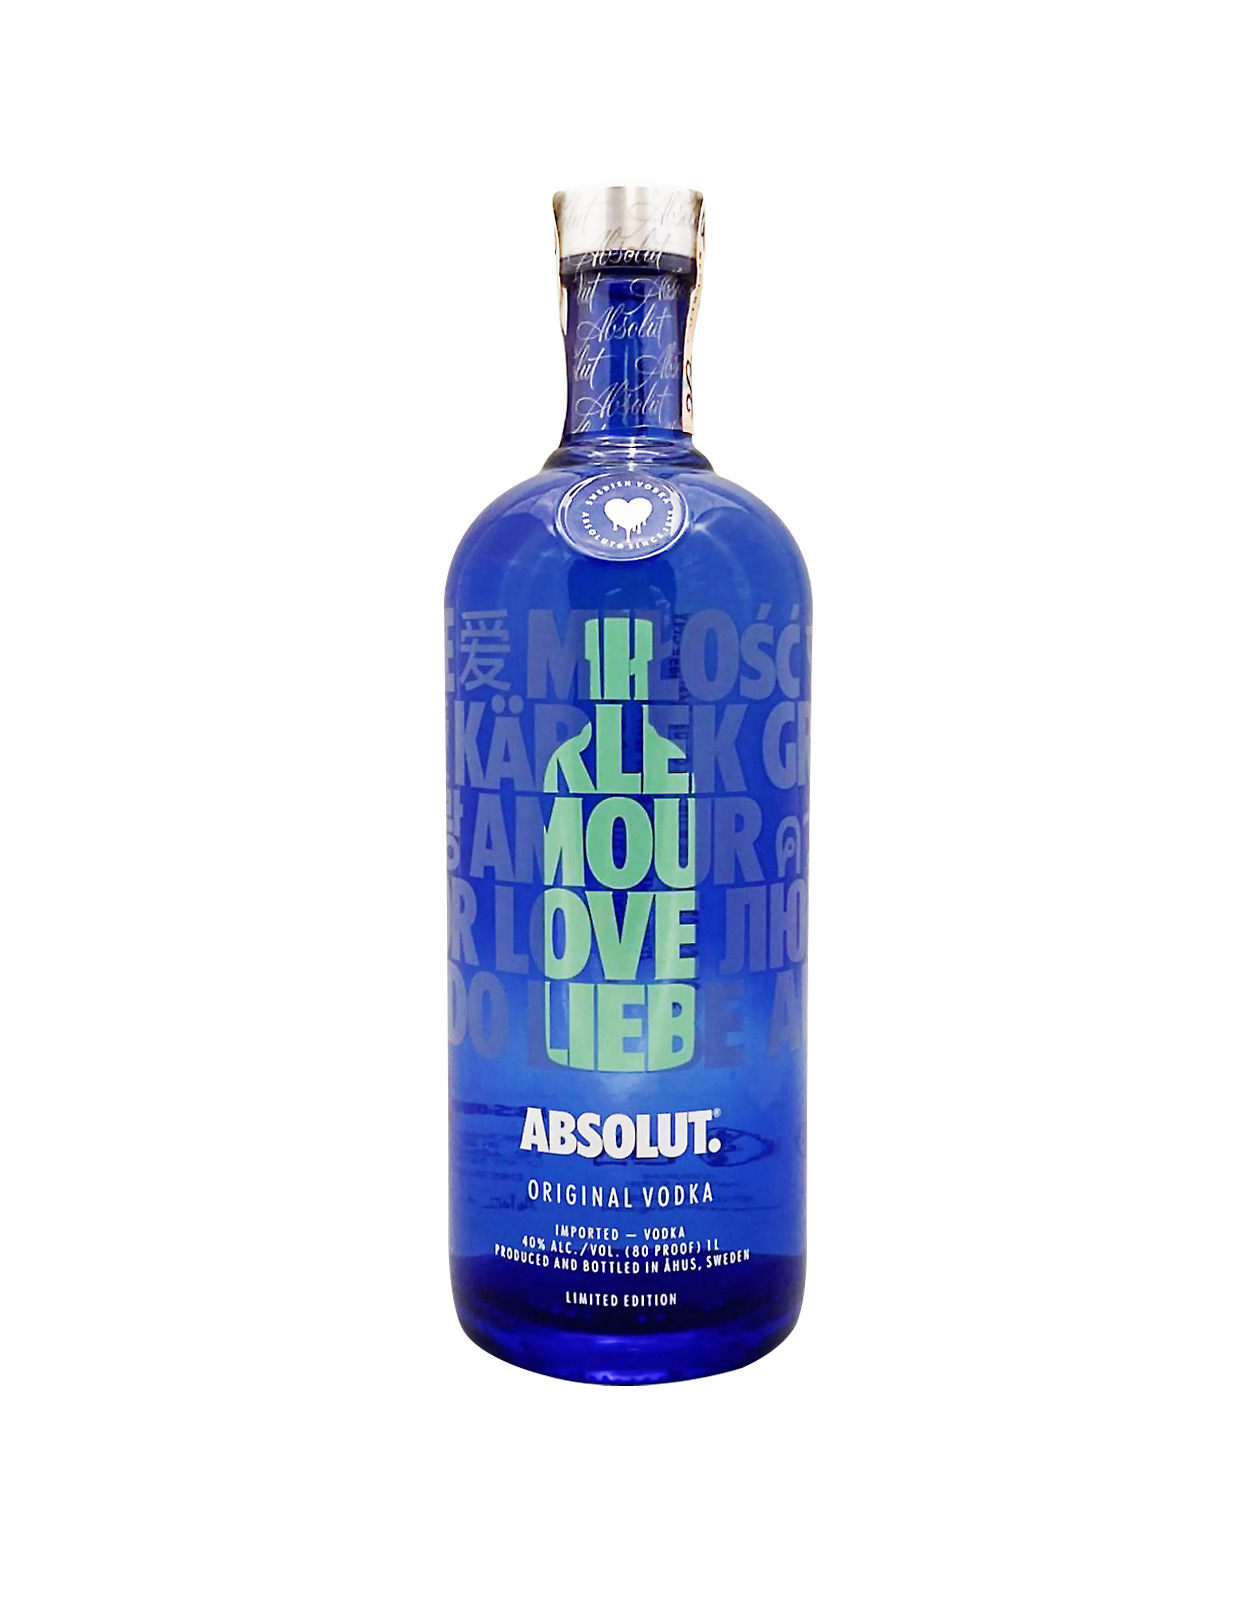 Absolut Drop Of Love 40%, Bottleshop Sunny wines slnecnice mesto, petrzalka, Vodka, rozvoz alkoholu, eshop